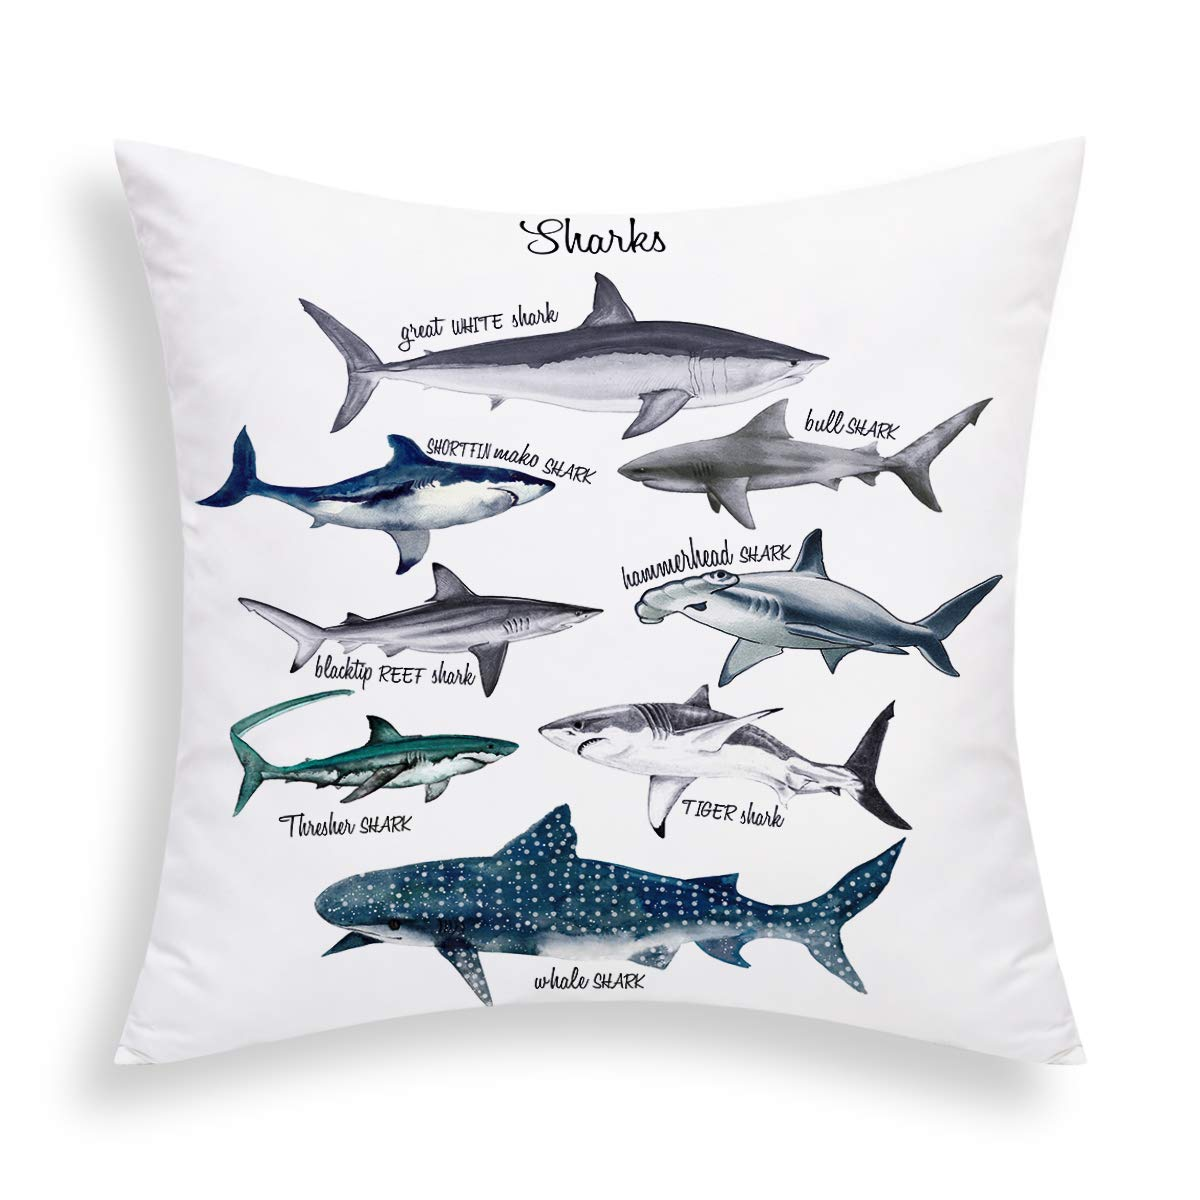 BLEUM CADE Sharks Pillow Cover Sealife Throw Pillow Cover Marine Theme Decorative Cushion Cover 18 X 18 Inch for Sofa Couch Bed and Car